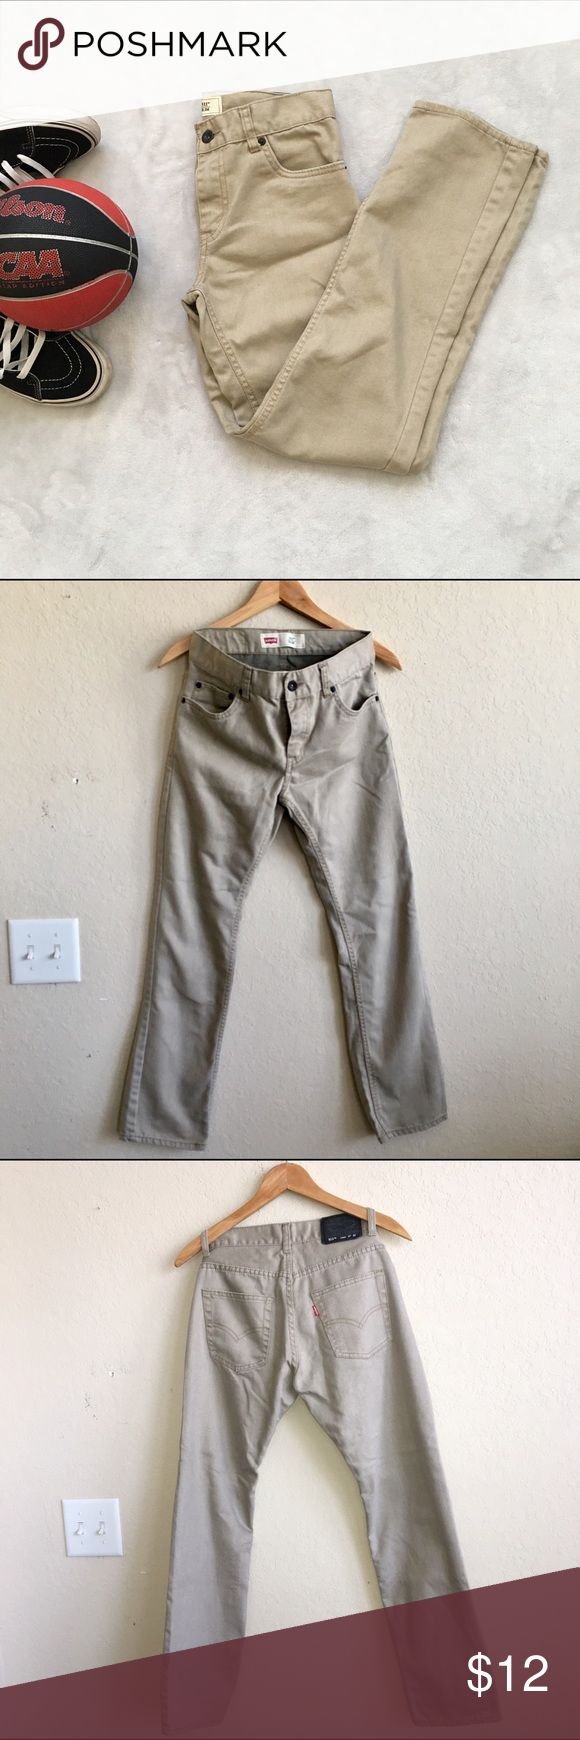 Levi's 511 Slim Jeans 👖 (boys) ✨Trying to clean my children's closet, most of the clothes are new and in perfect condition but they do not have the tag✨Size 14, No smoking Home✨ Levi's Bottoms Jeans